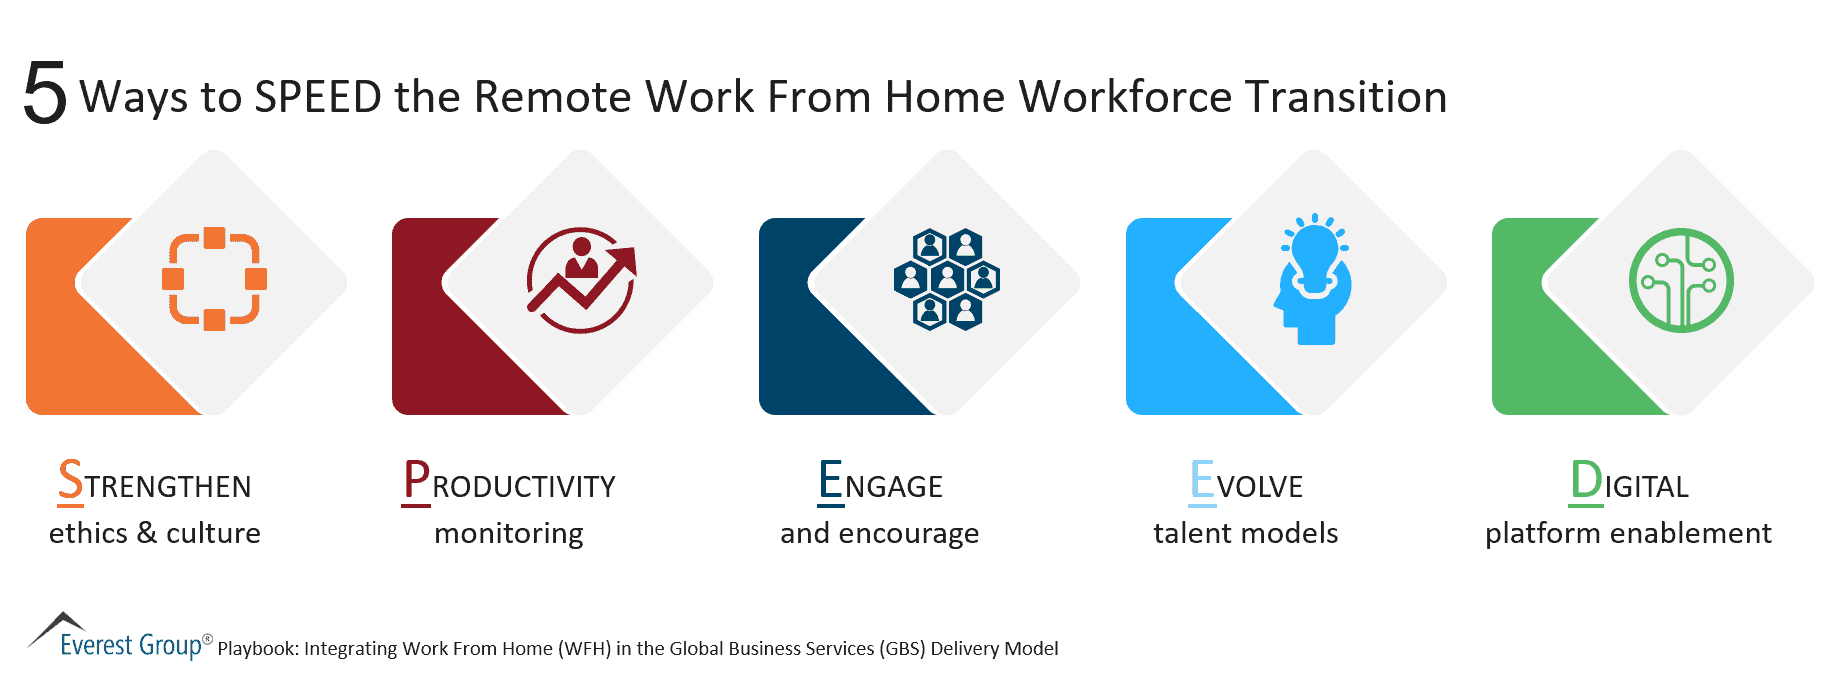 5 Ways to SPEED the Remote Work From Home Workforce Transition